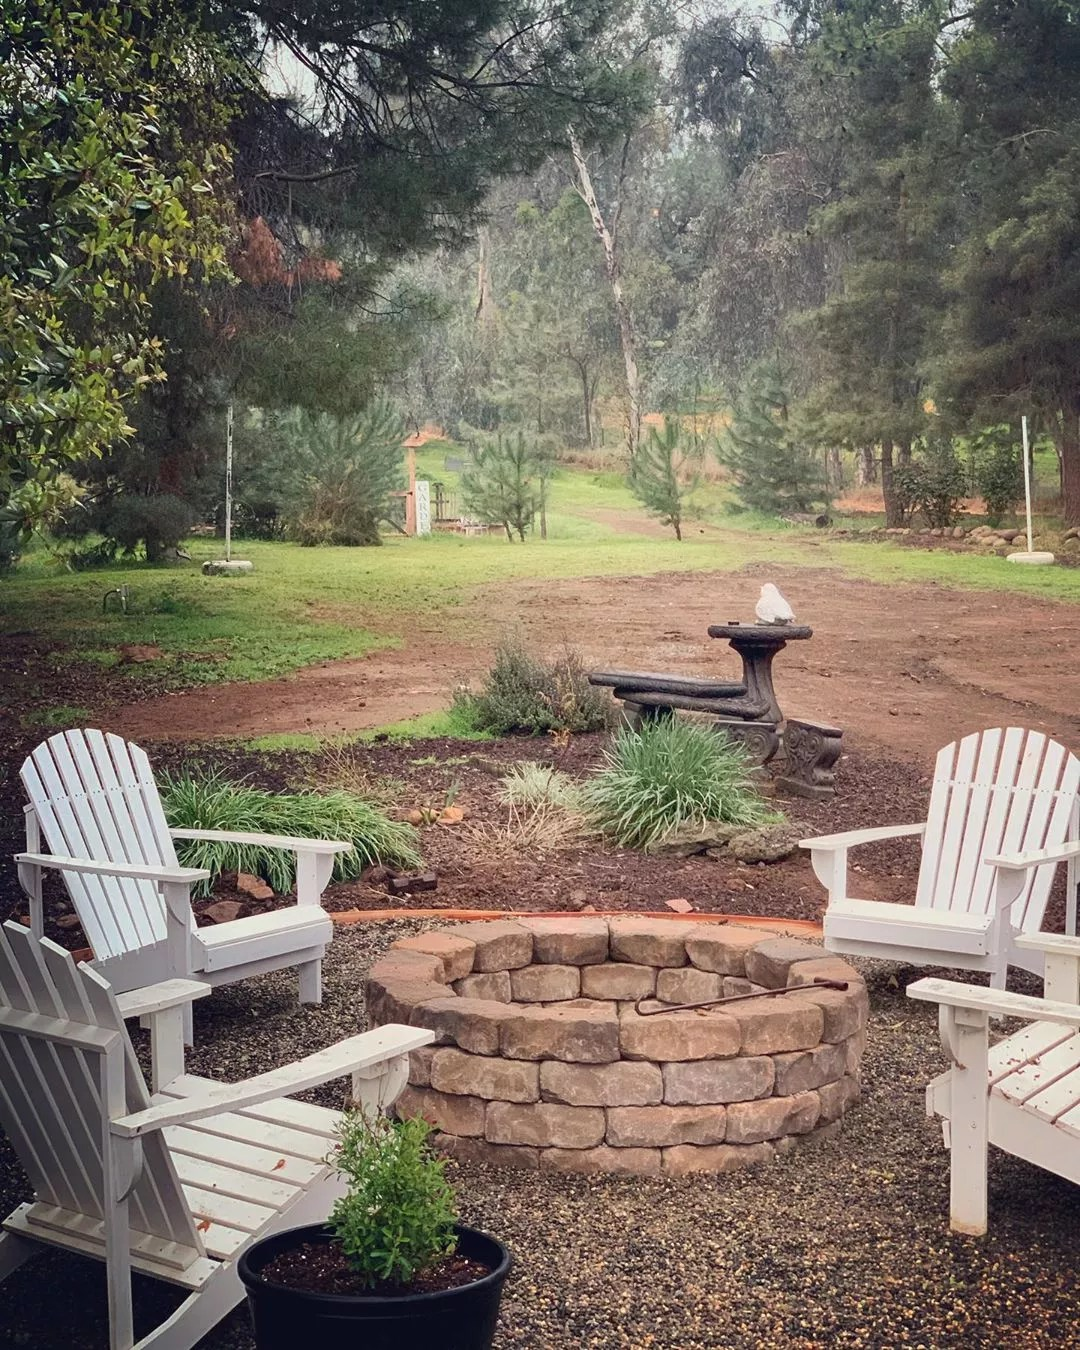 backyard fire pit built with large stones and white adirondack chairs around photo by Instagram user @claudio_paisagismo